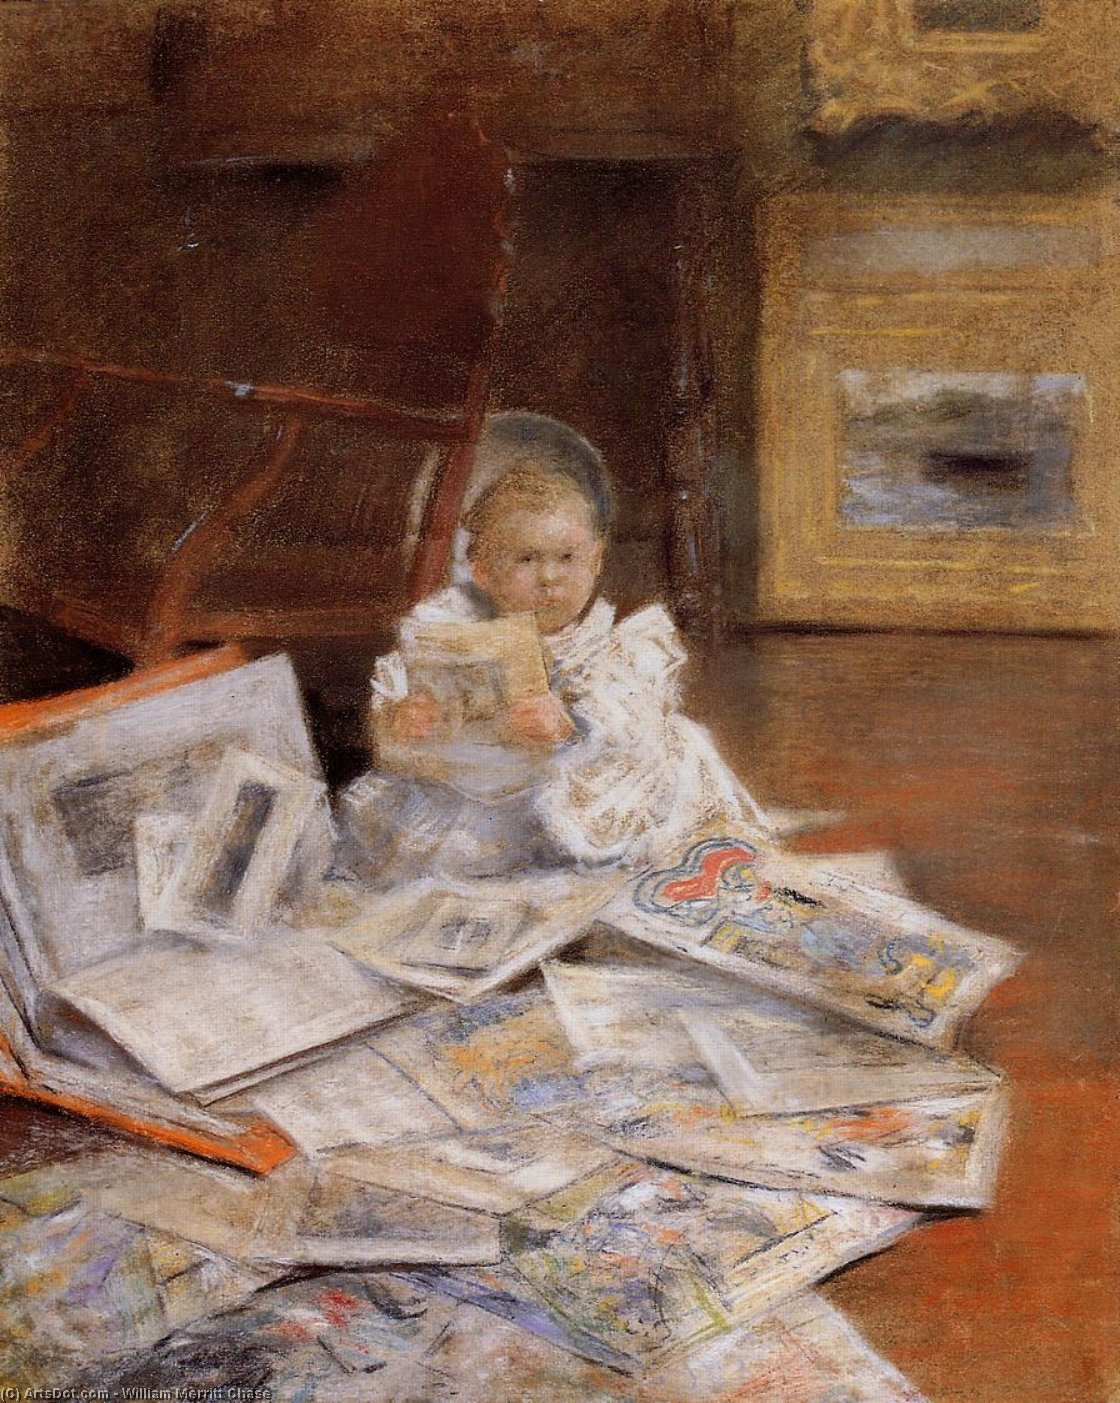 Child with Prints, Pastel by William Merritt Chase (1849-1916, United States)